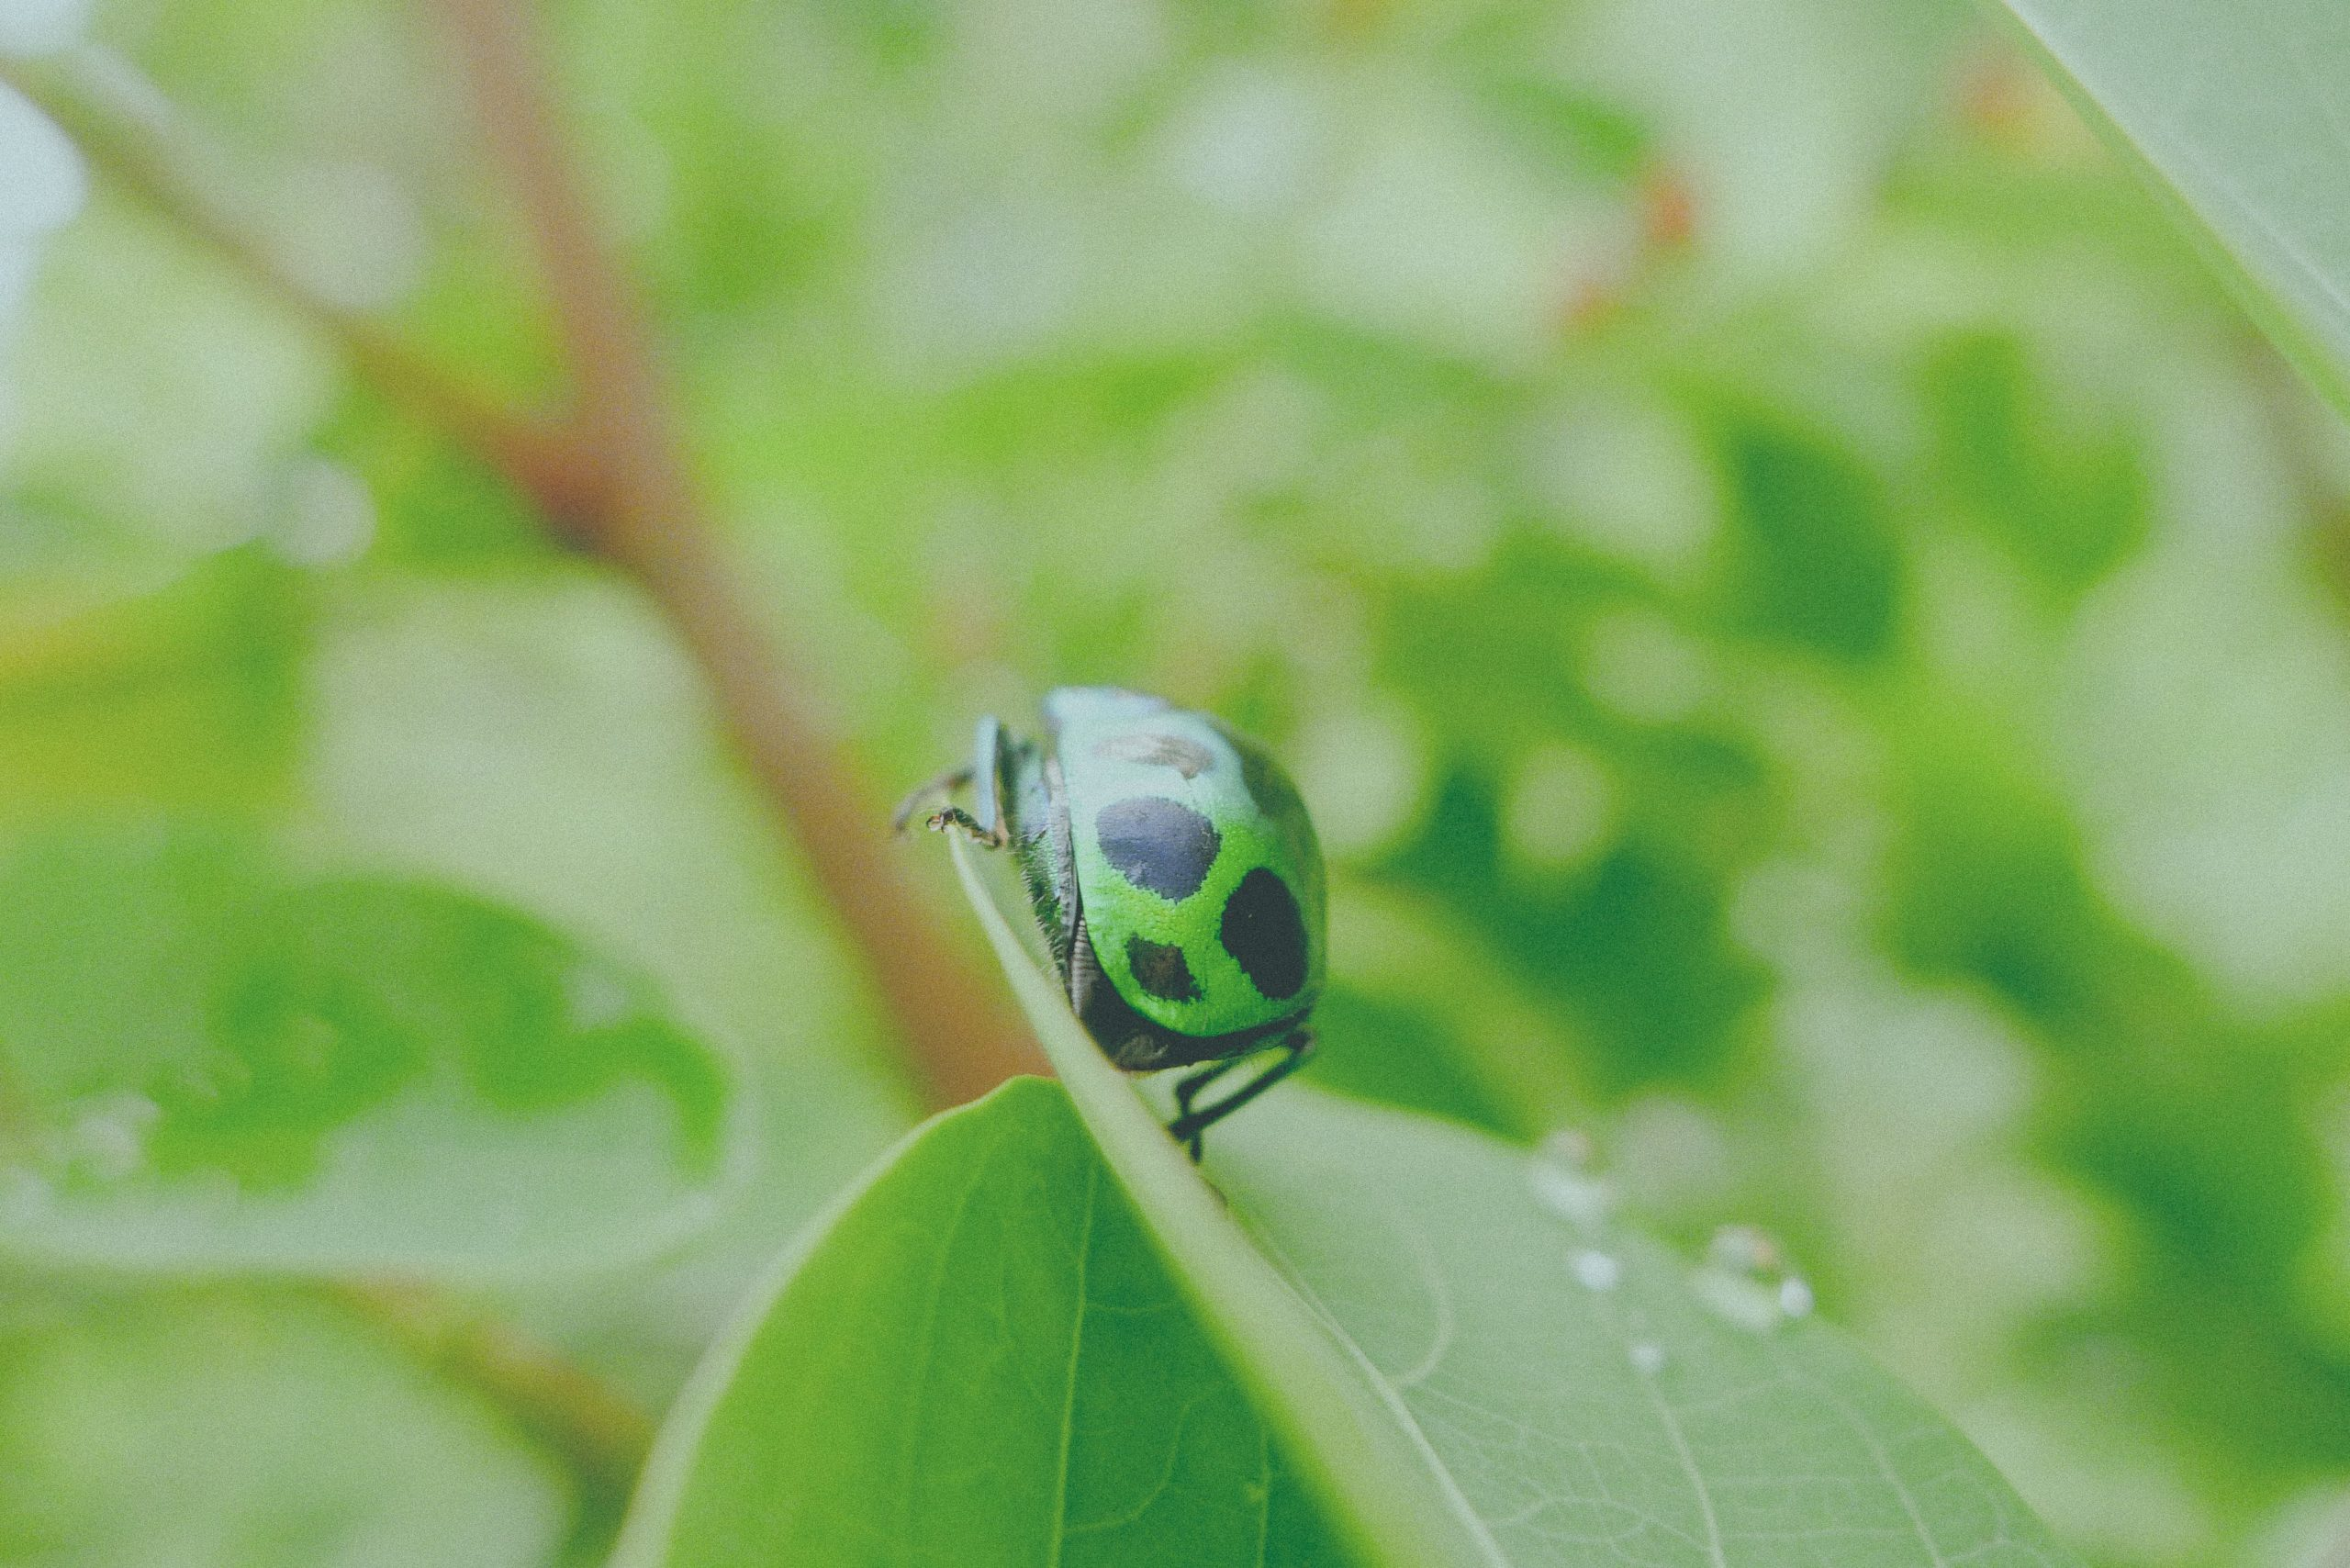 """Green bug on tree"" Photo by Haley Photography on Unsplash"